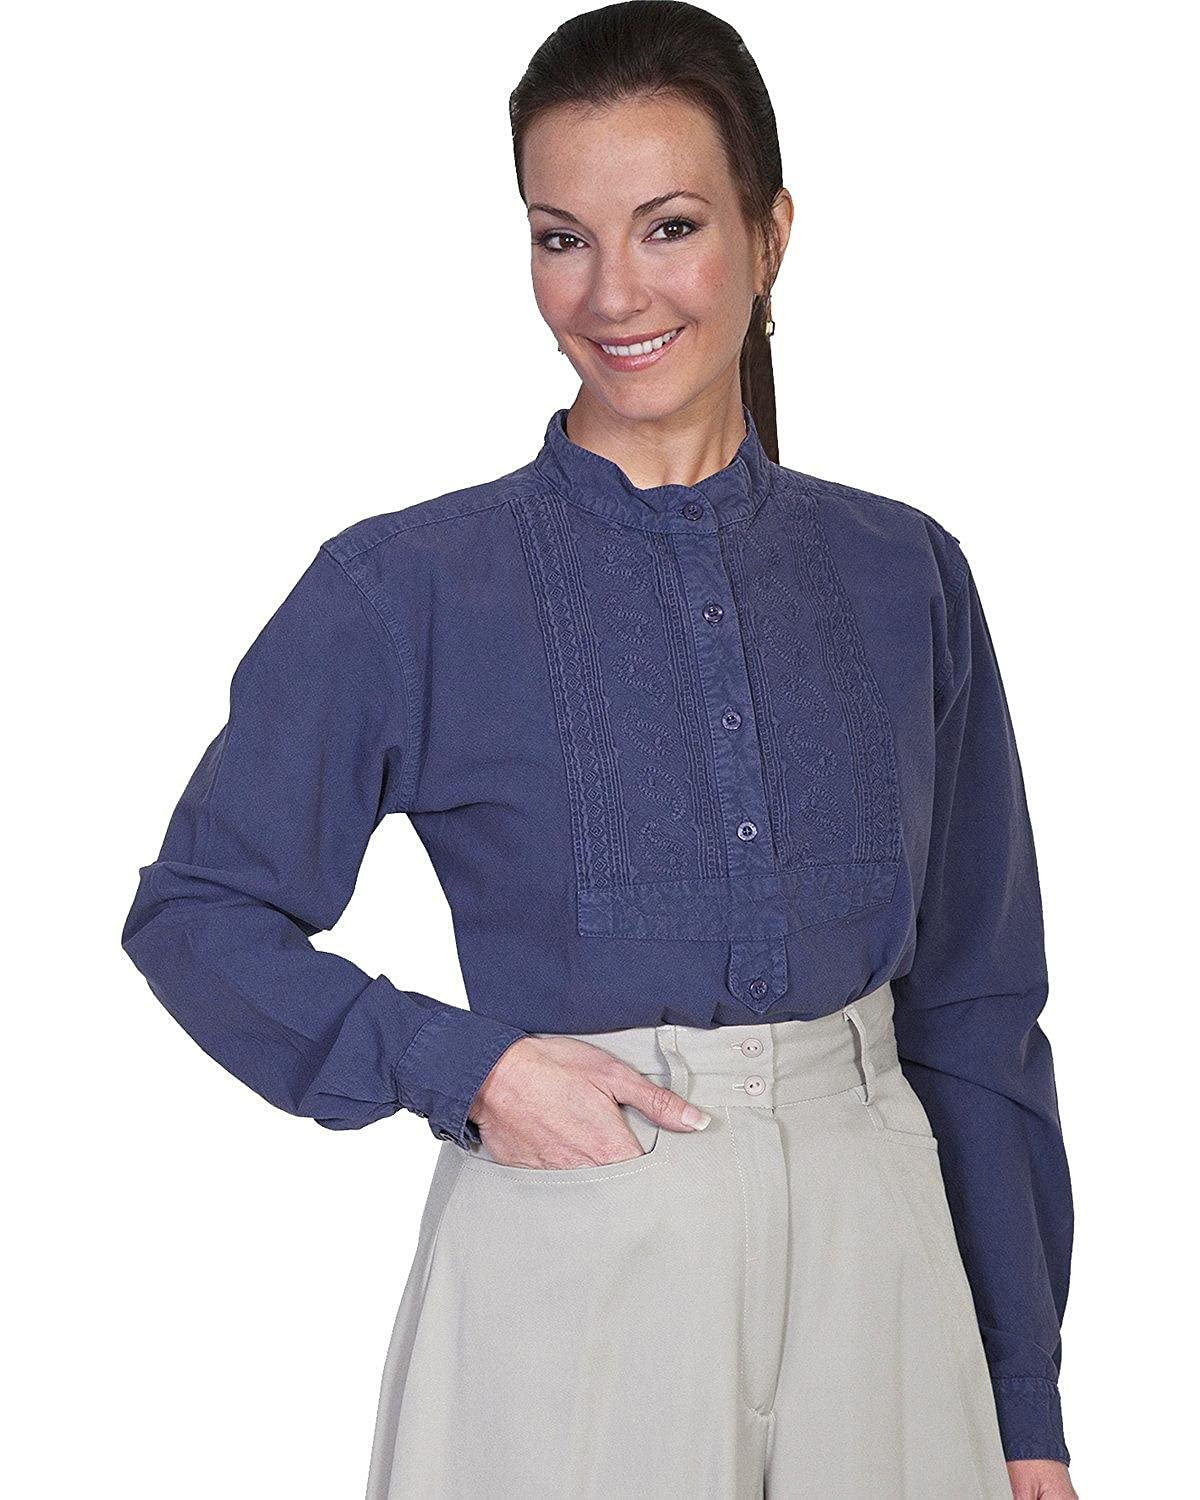 Victorian Blouses, Tops, Shirts, Sweaters Scully Womens RW577 Paisley Bib Front Blouse $62.41 AT vintagedancer.com